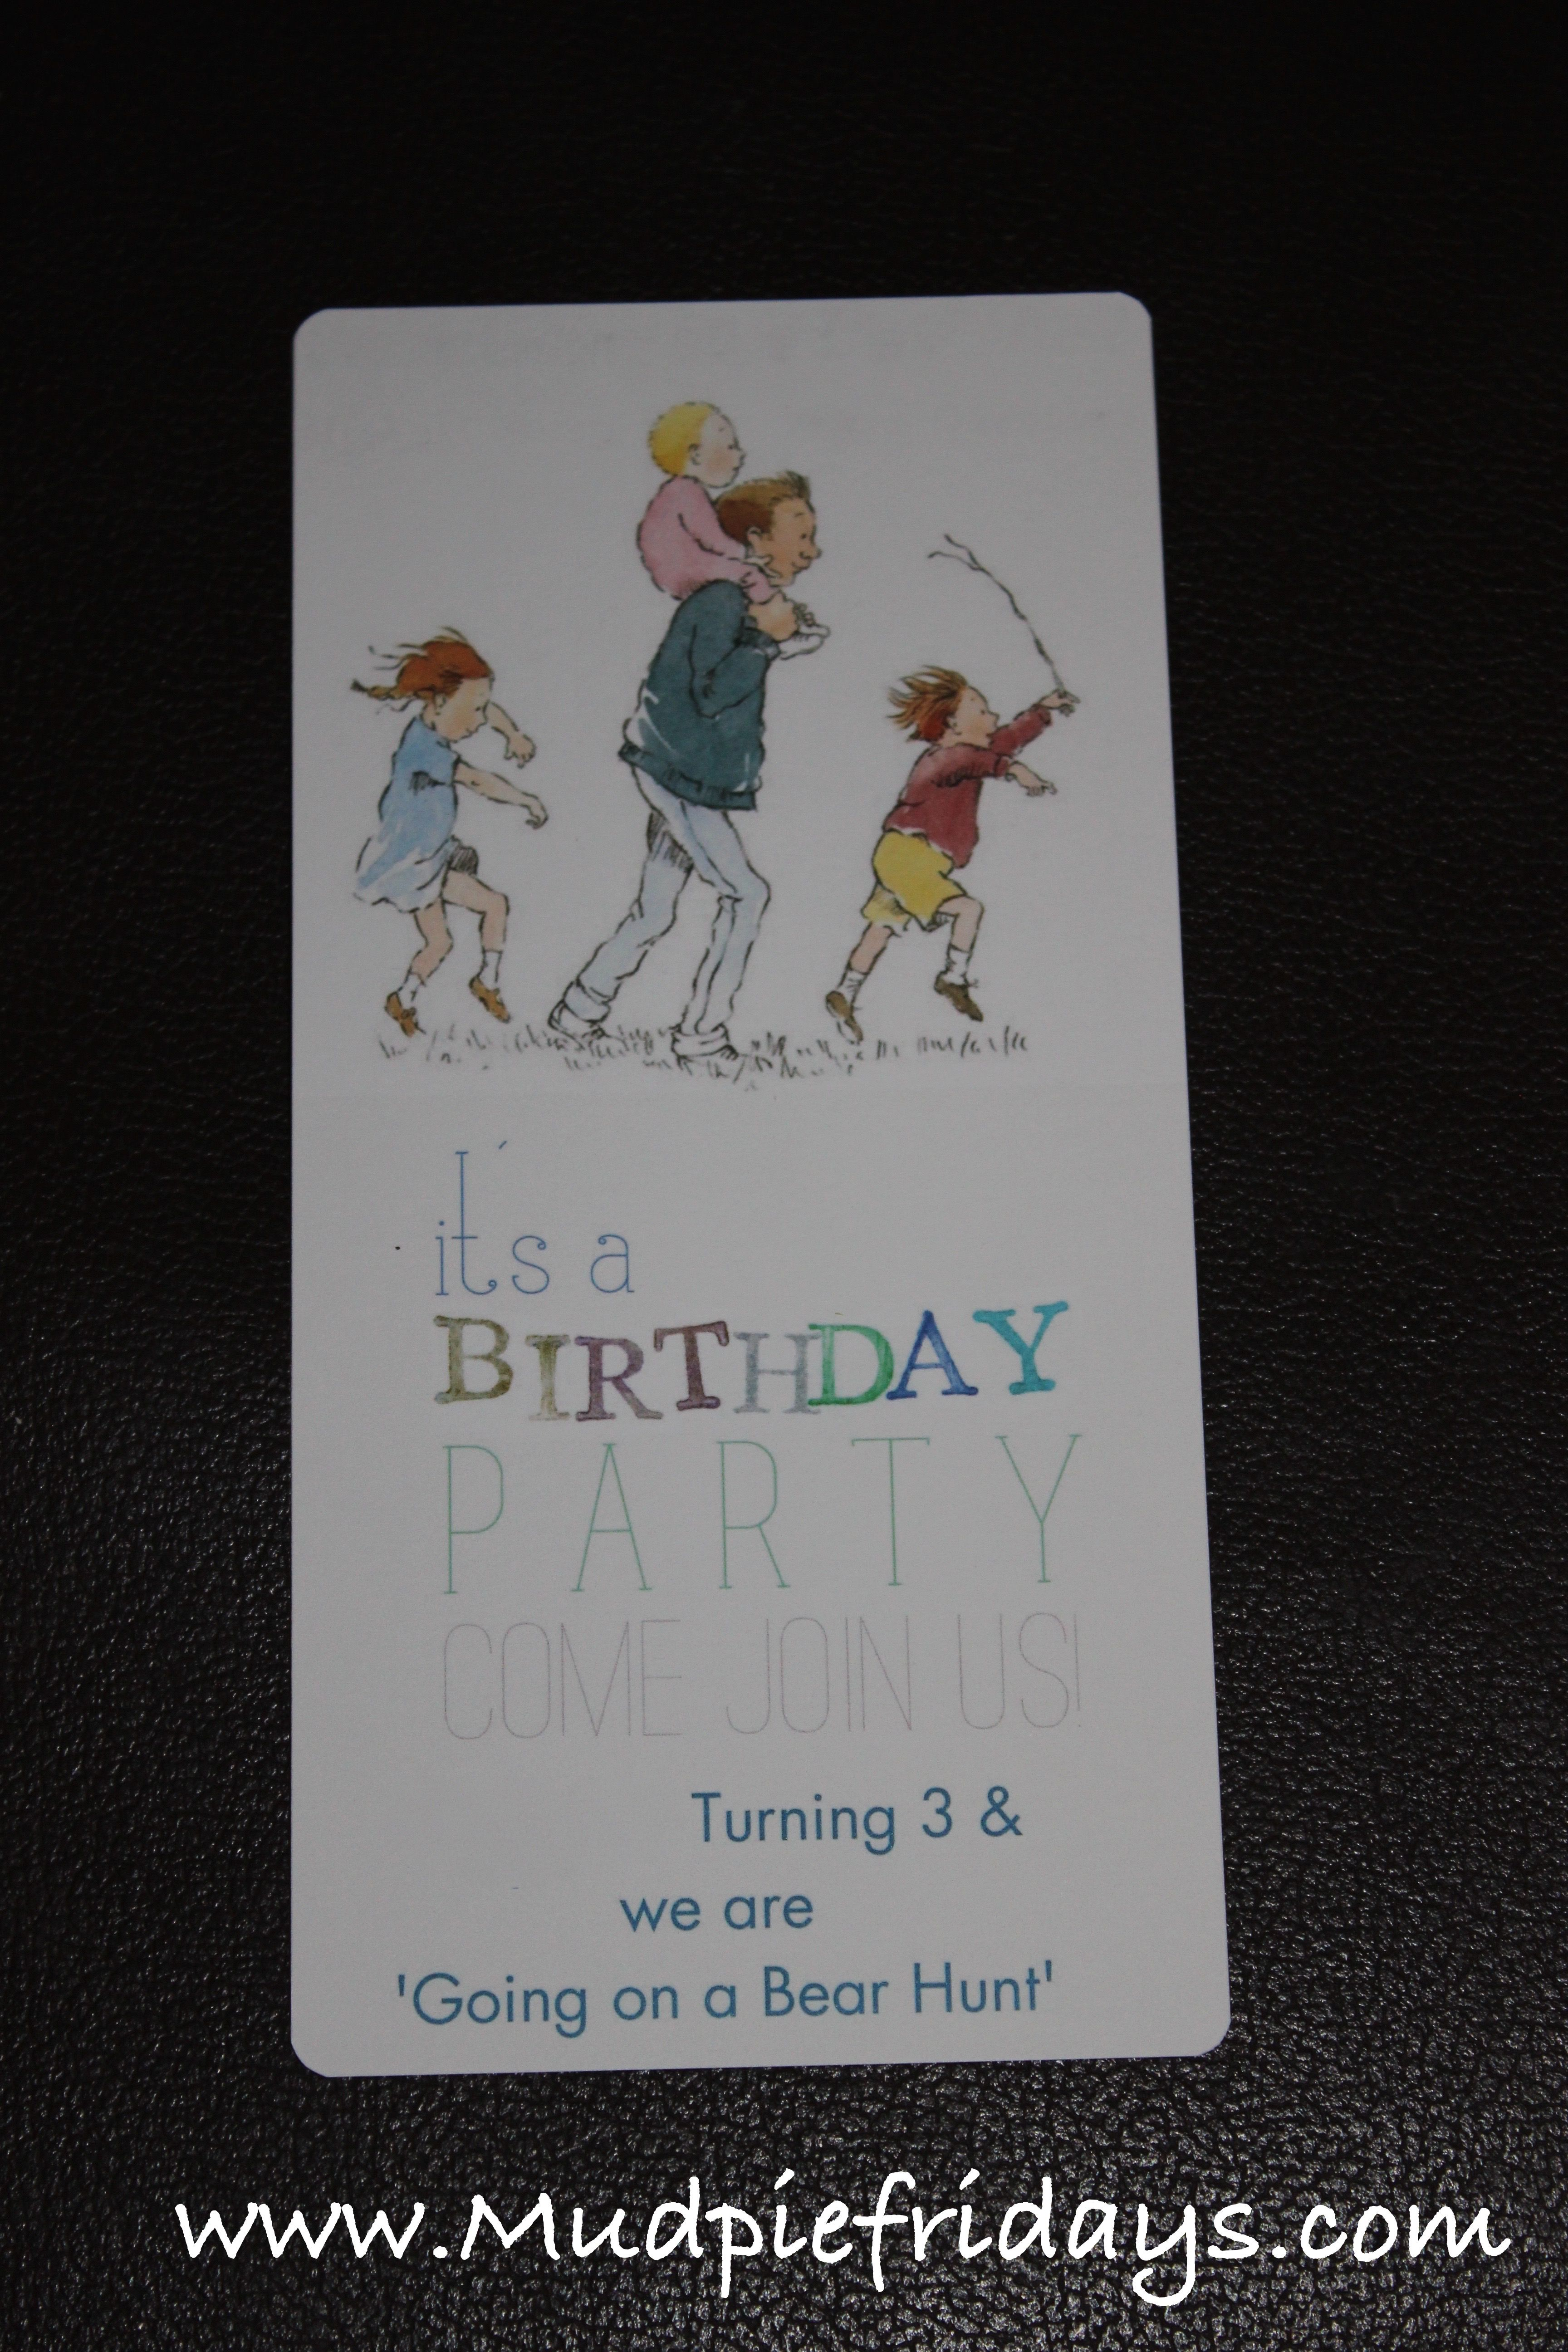 bday party invitation mail%0A Going on a Bear Hunt Birthday Party Invite